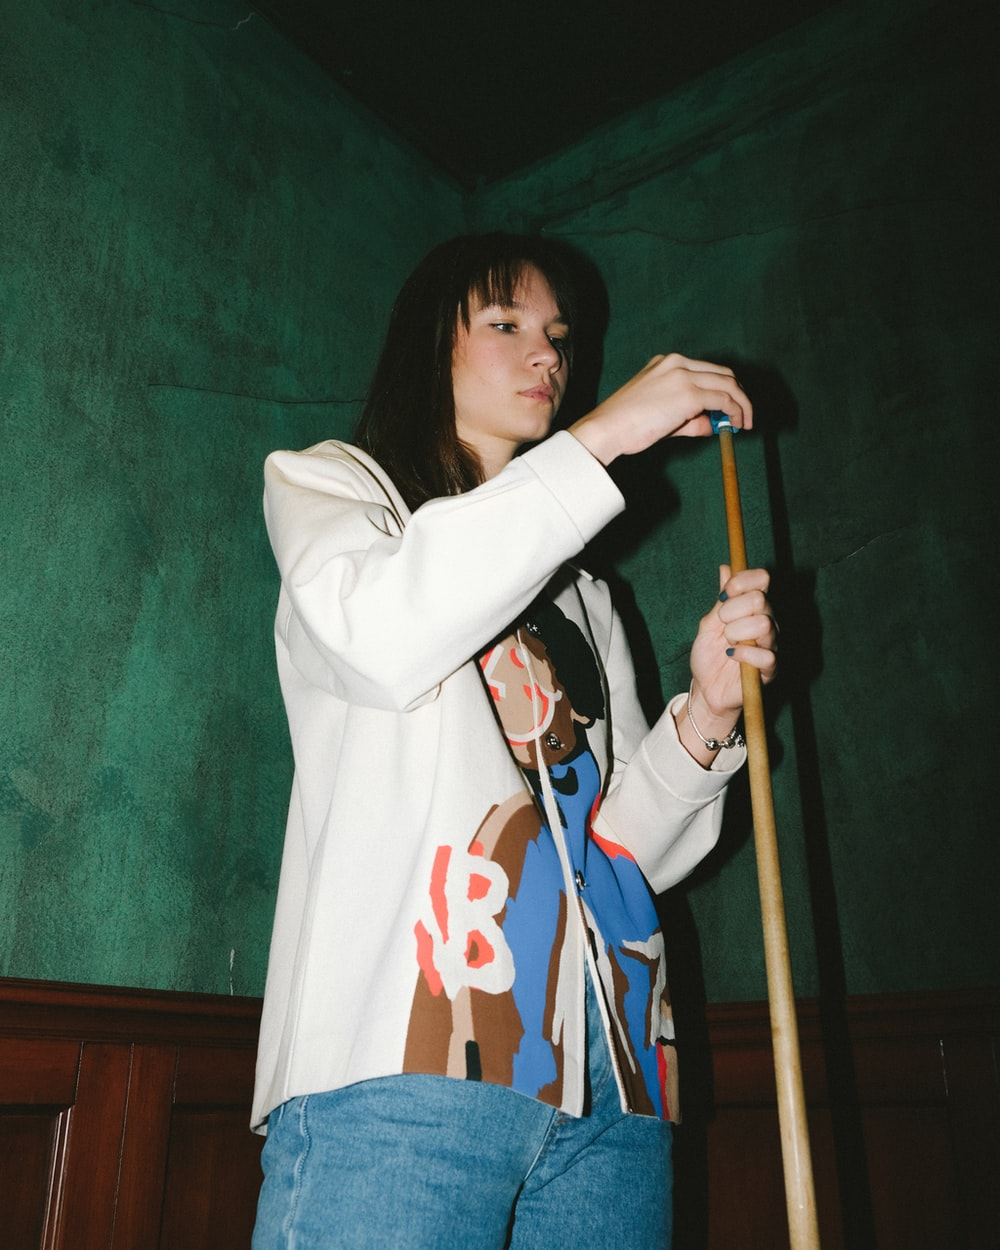 woman in white long sleeve shirt holding brown wooden stick